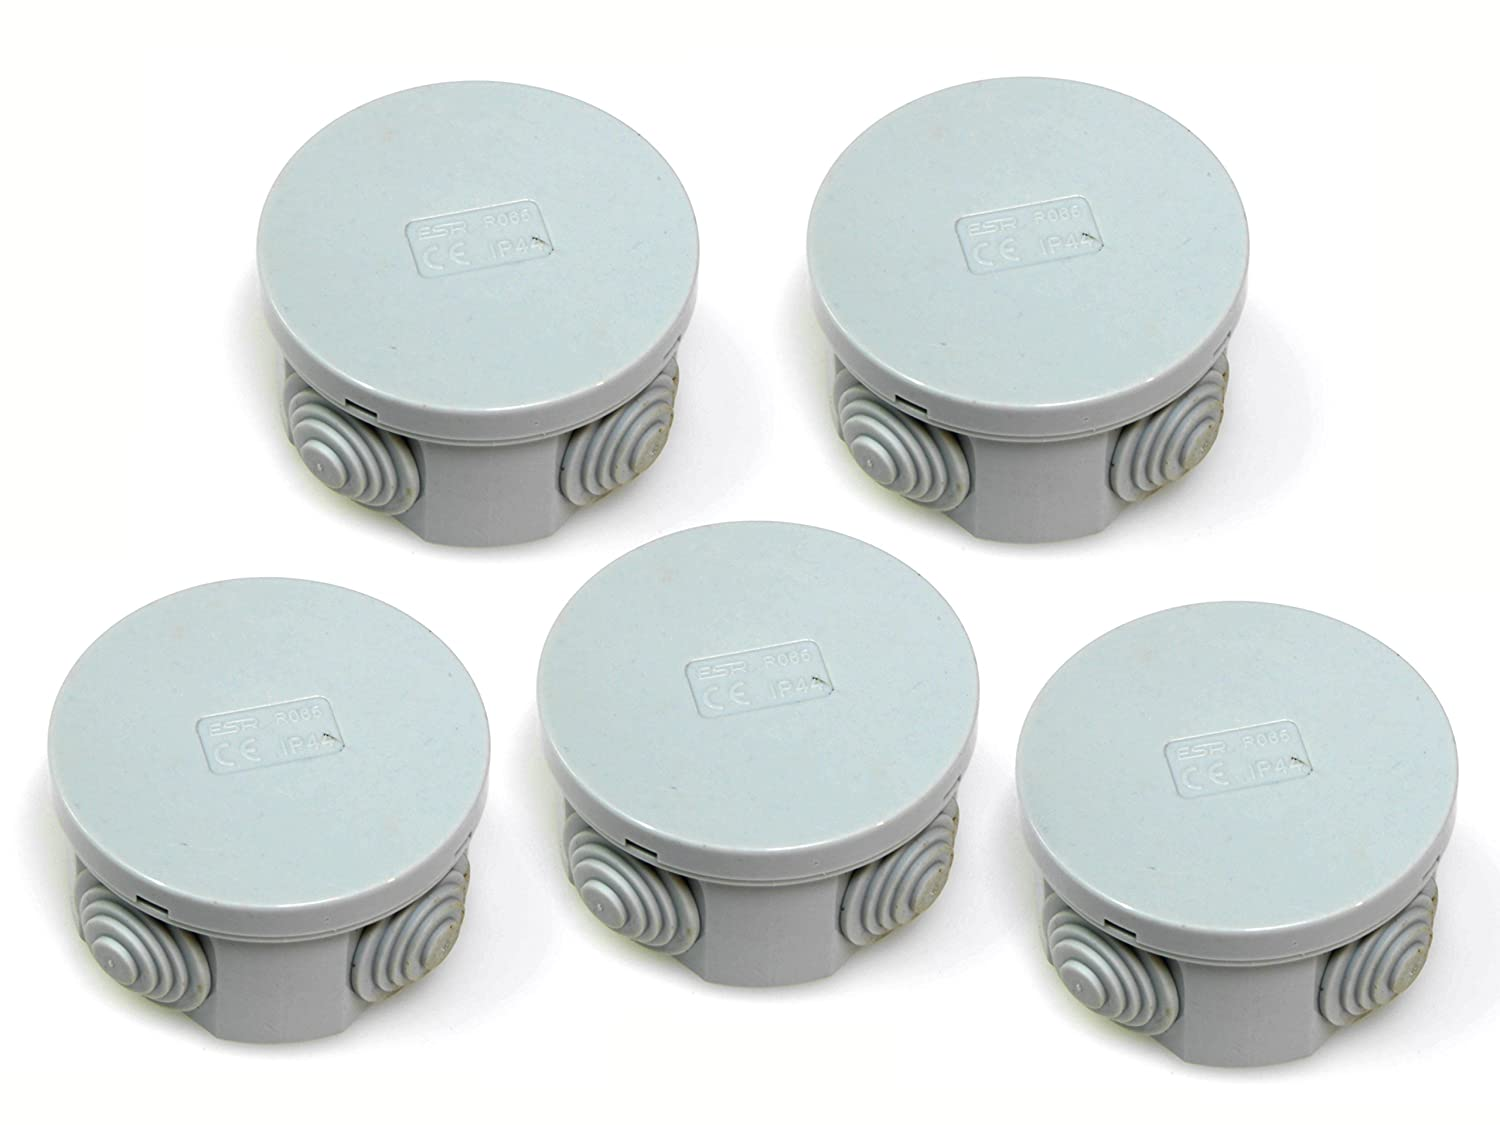 5x IP44 junction box with rubber grommets and snap on lid 65 x 35mm round lighting terminal cable connection adaptable enclosure case ESR